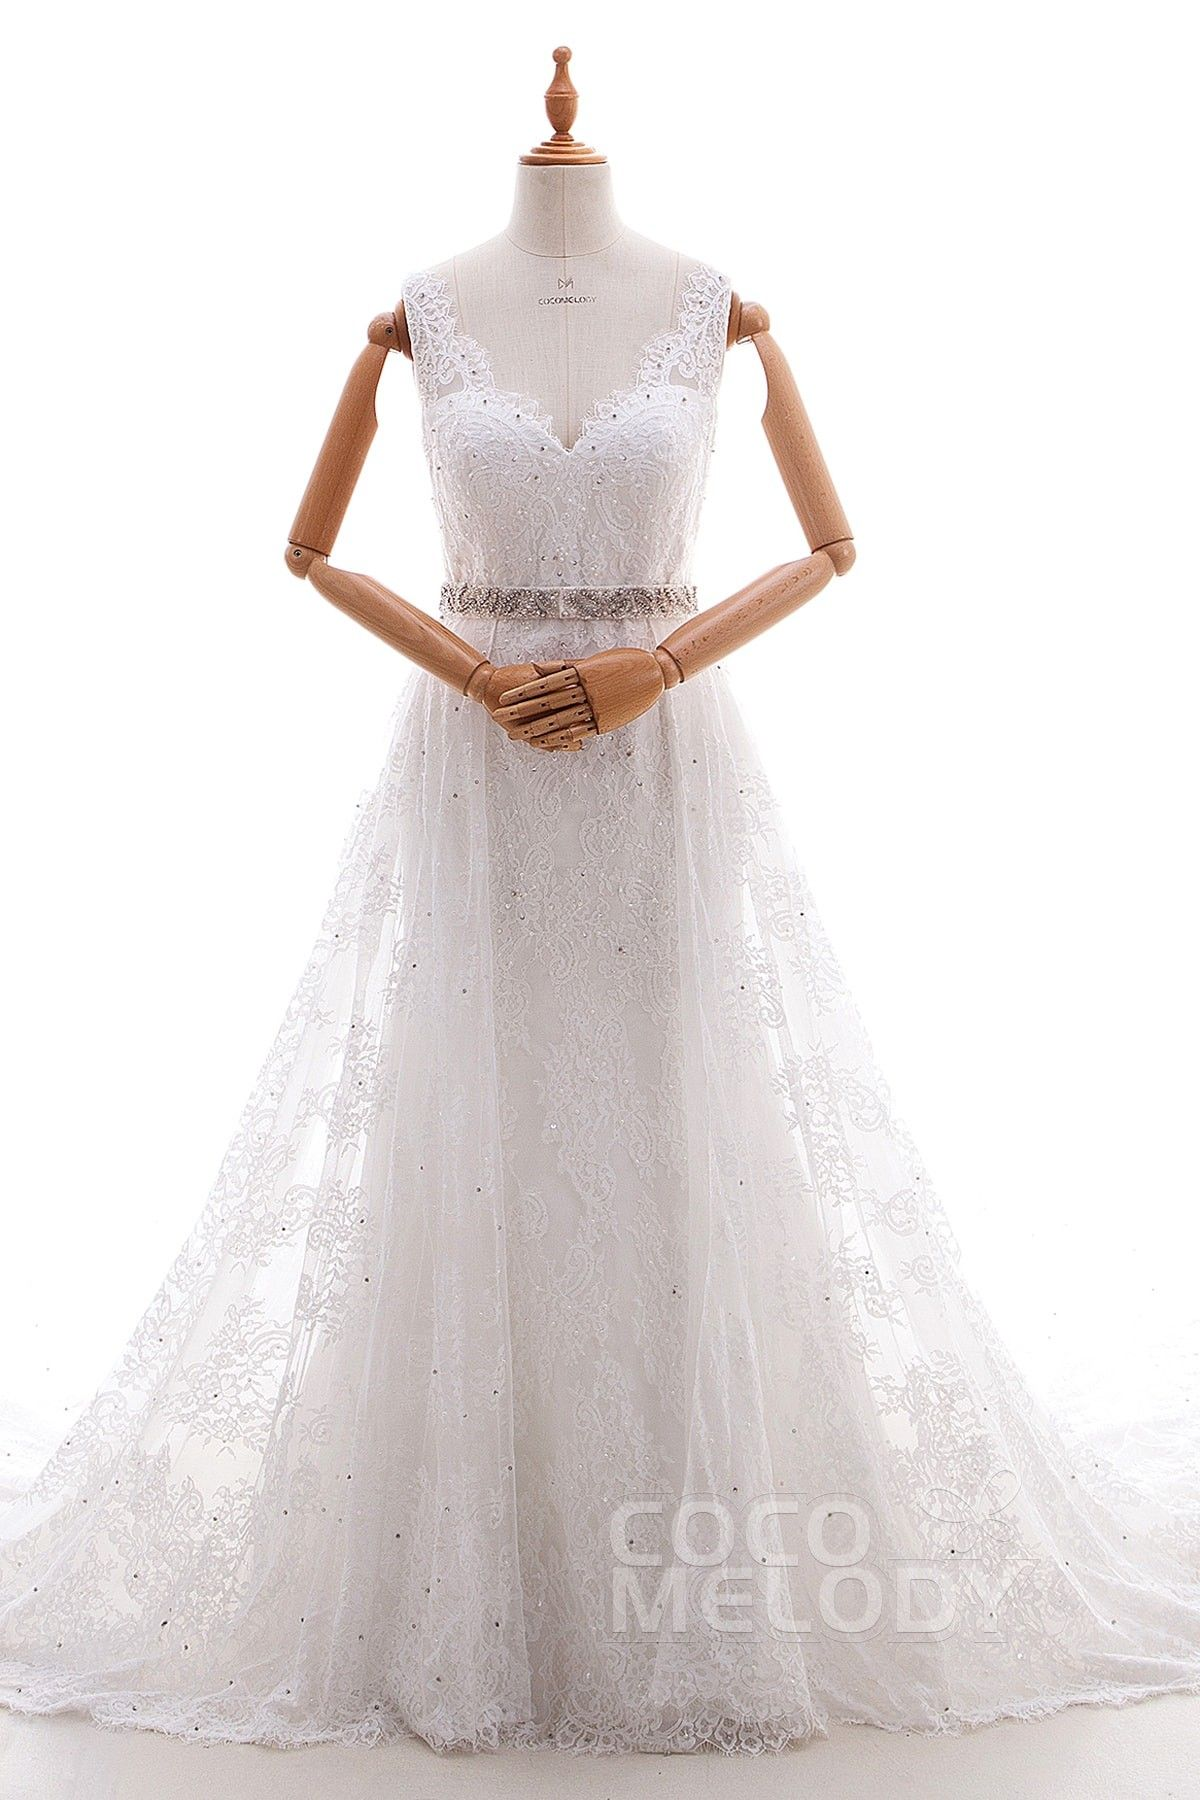 Lace wedding dress with train  ALine Cathedral Train Tulle and Lace Wedding Dress LD